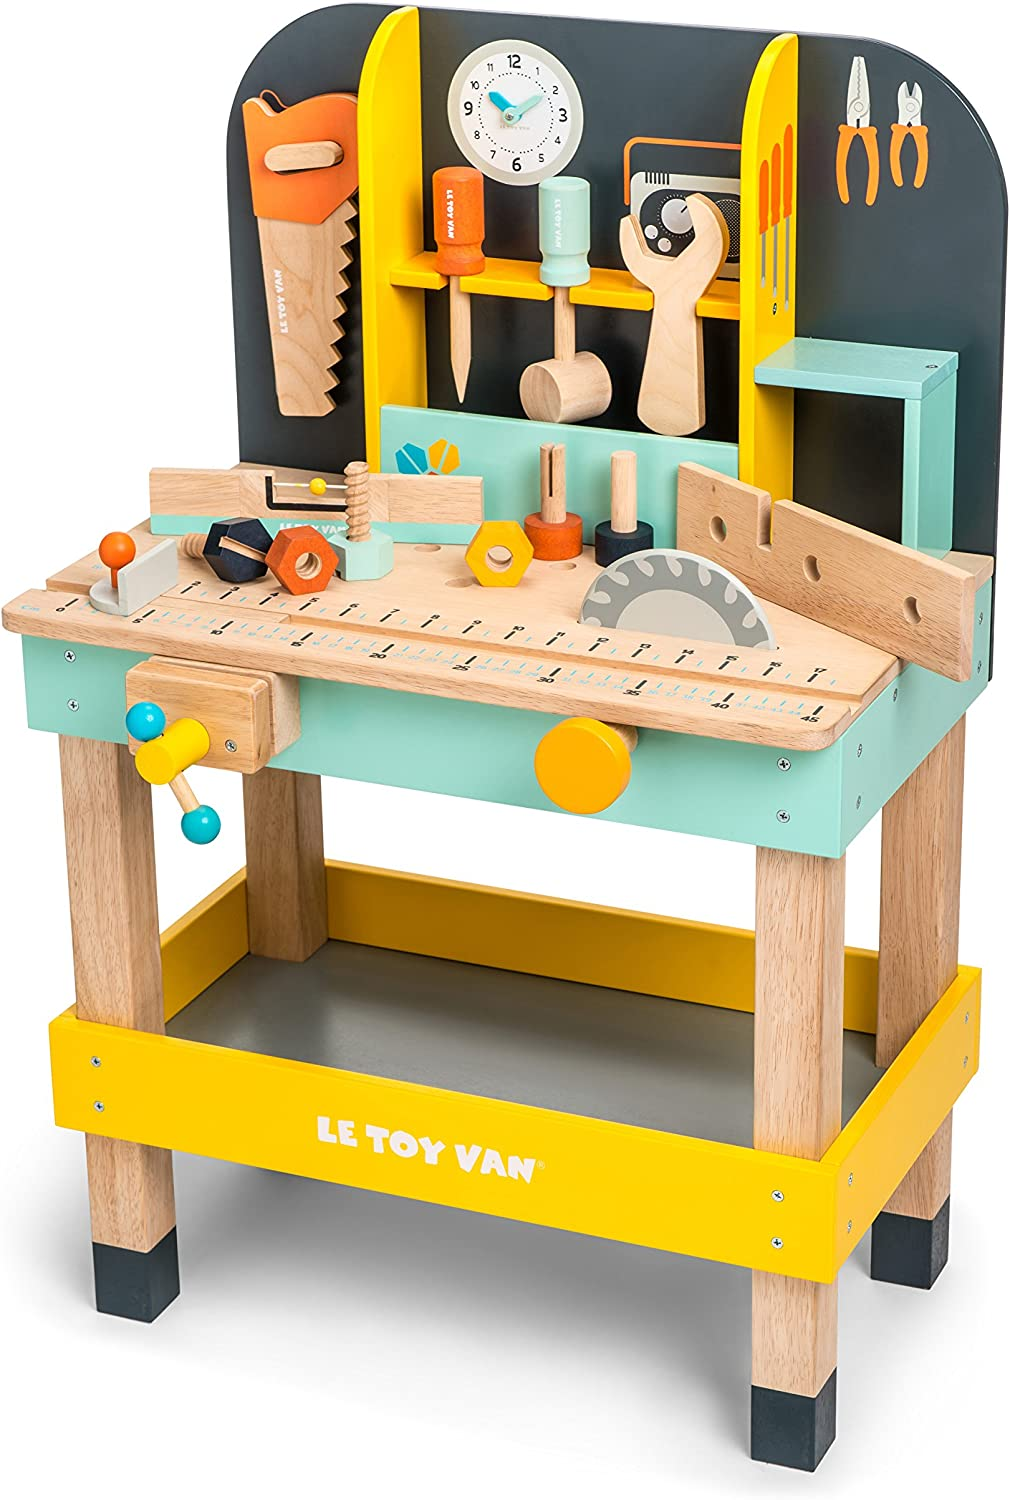 Le Toy Van Cars & Construction Collection Alex's Work Bench Premium Wooden Toys for Kids Ages 3 Years & Up